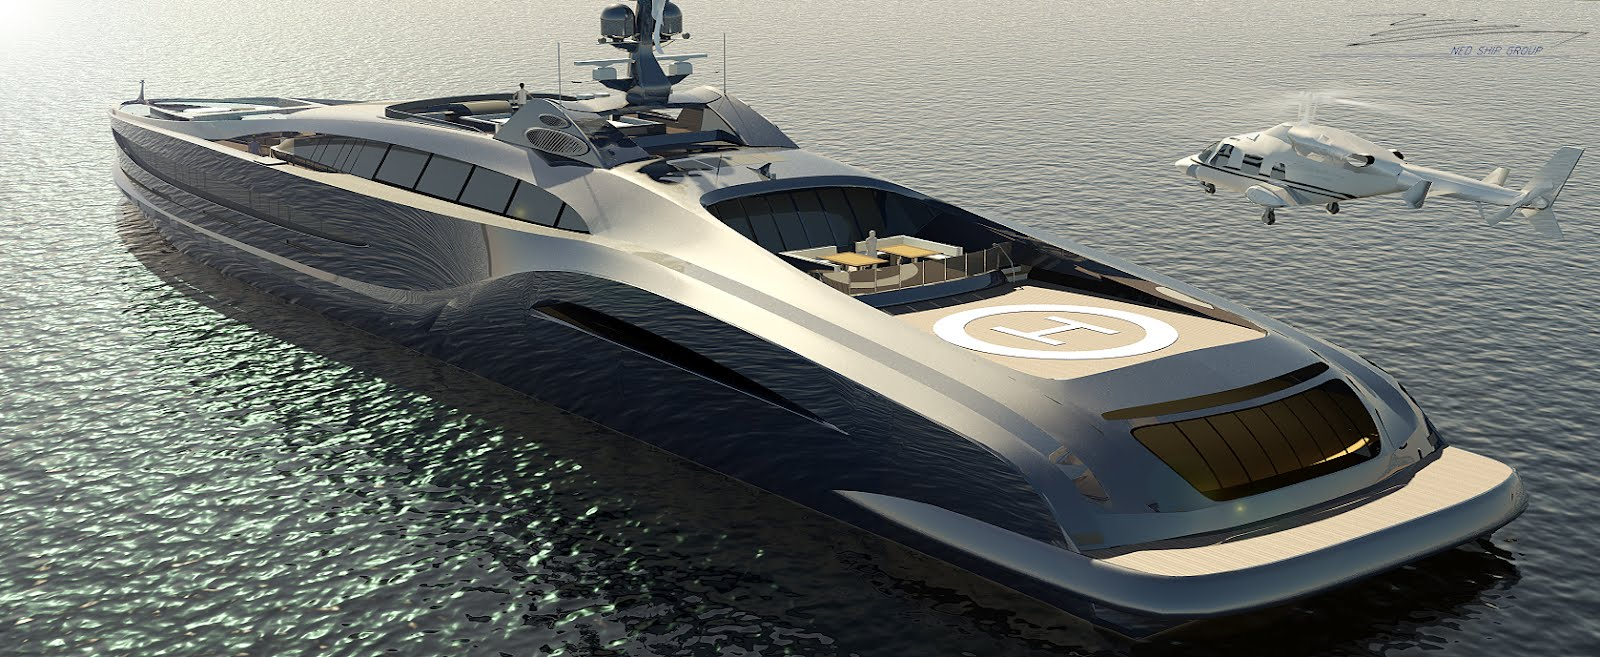 The Hottest Helicopter Decks on Private Yachts — Yacht